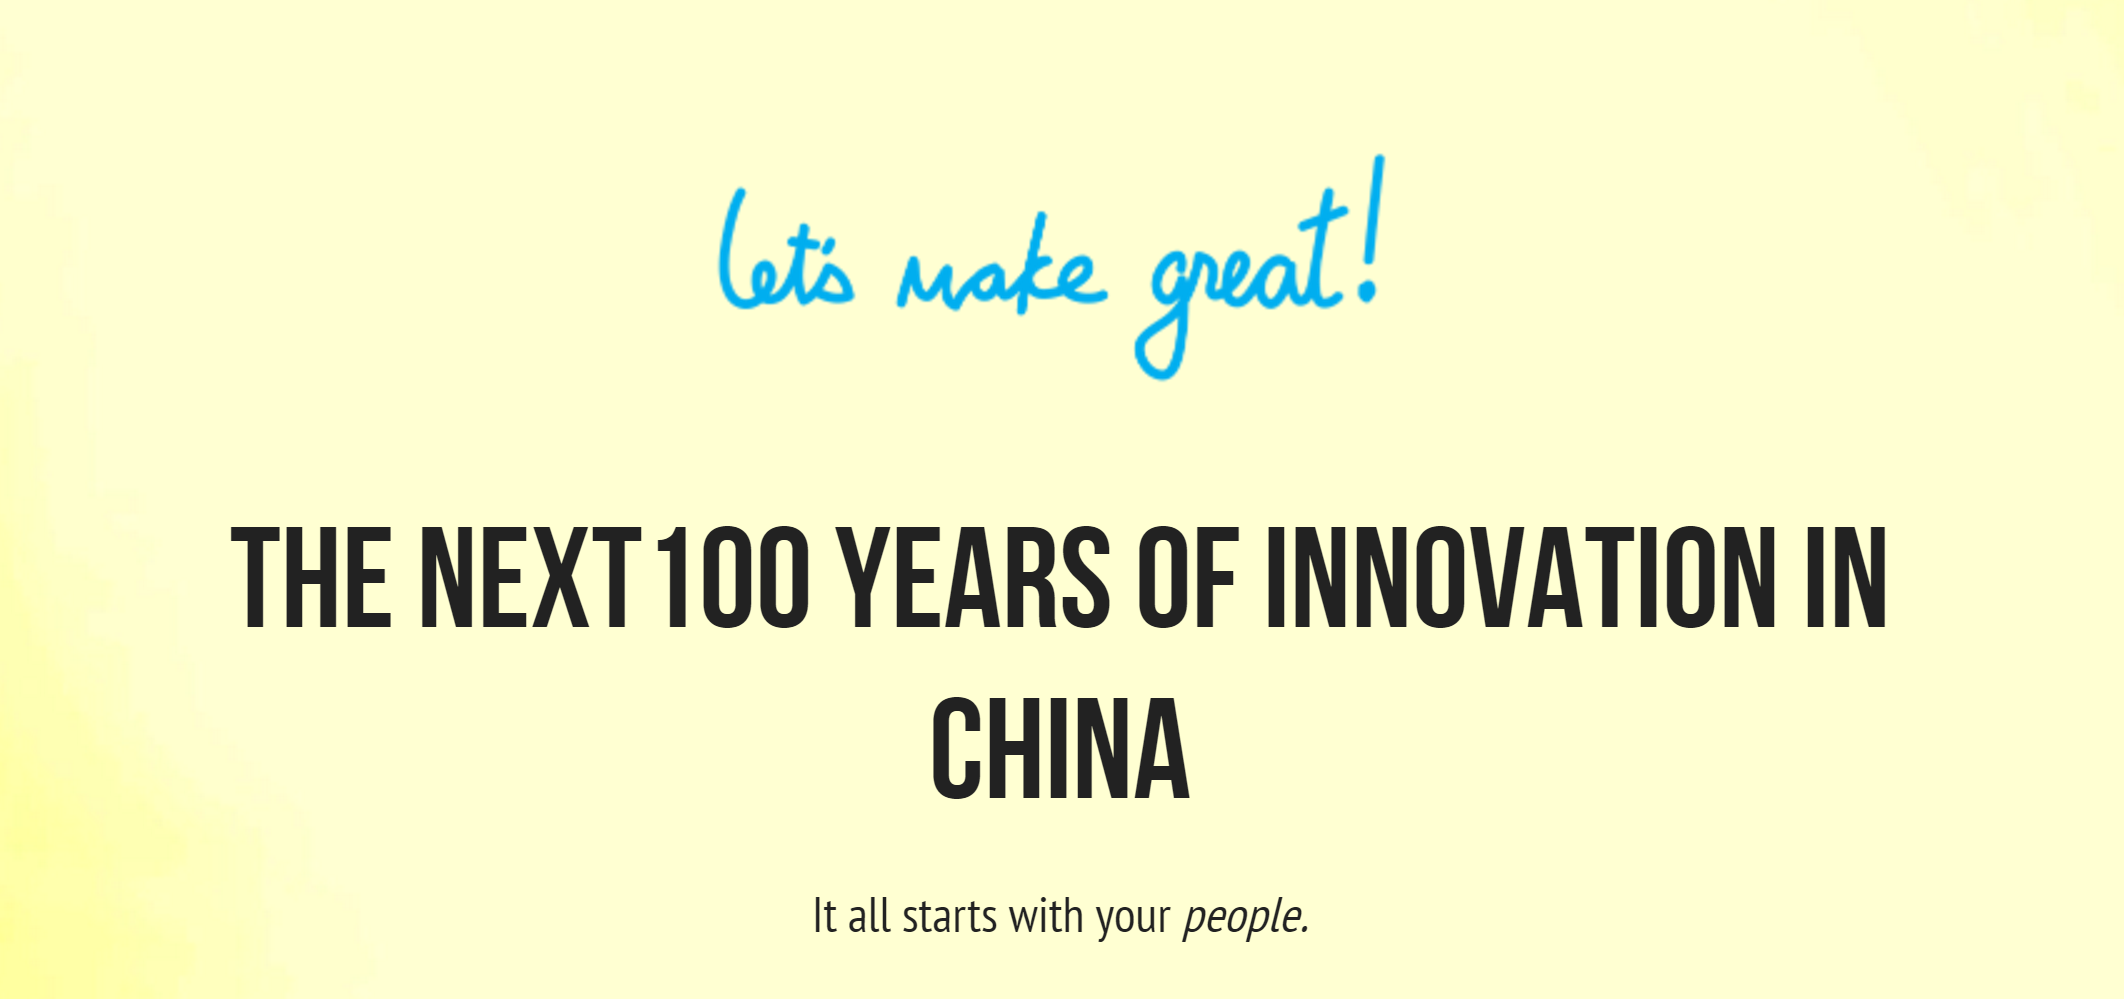 Brian Tam's innovative company -- Let's Make Great!